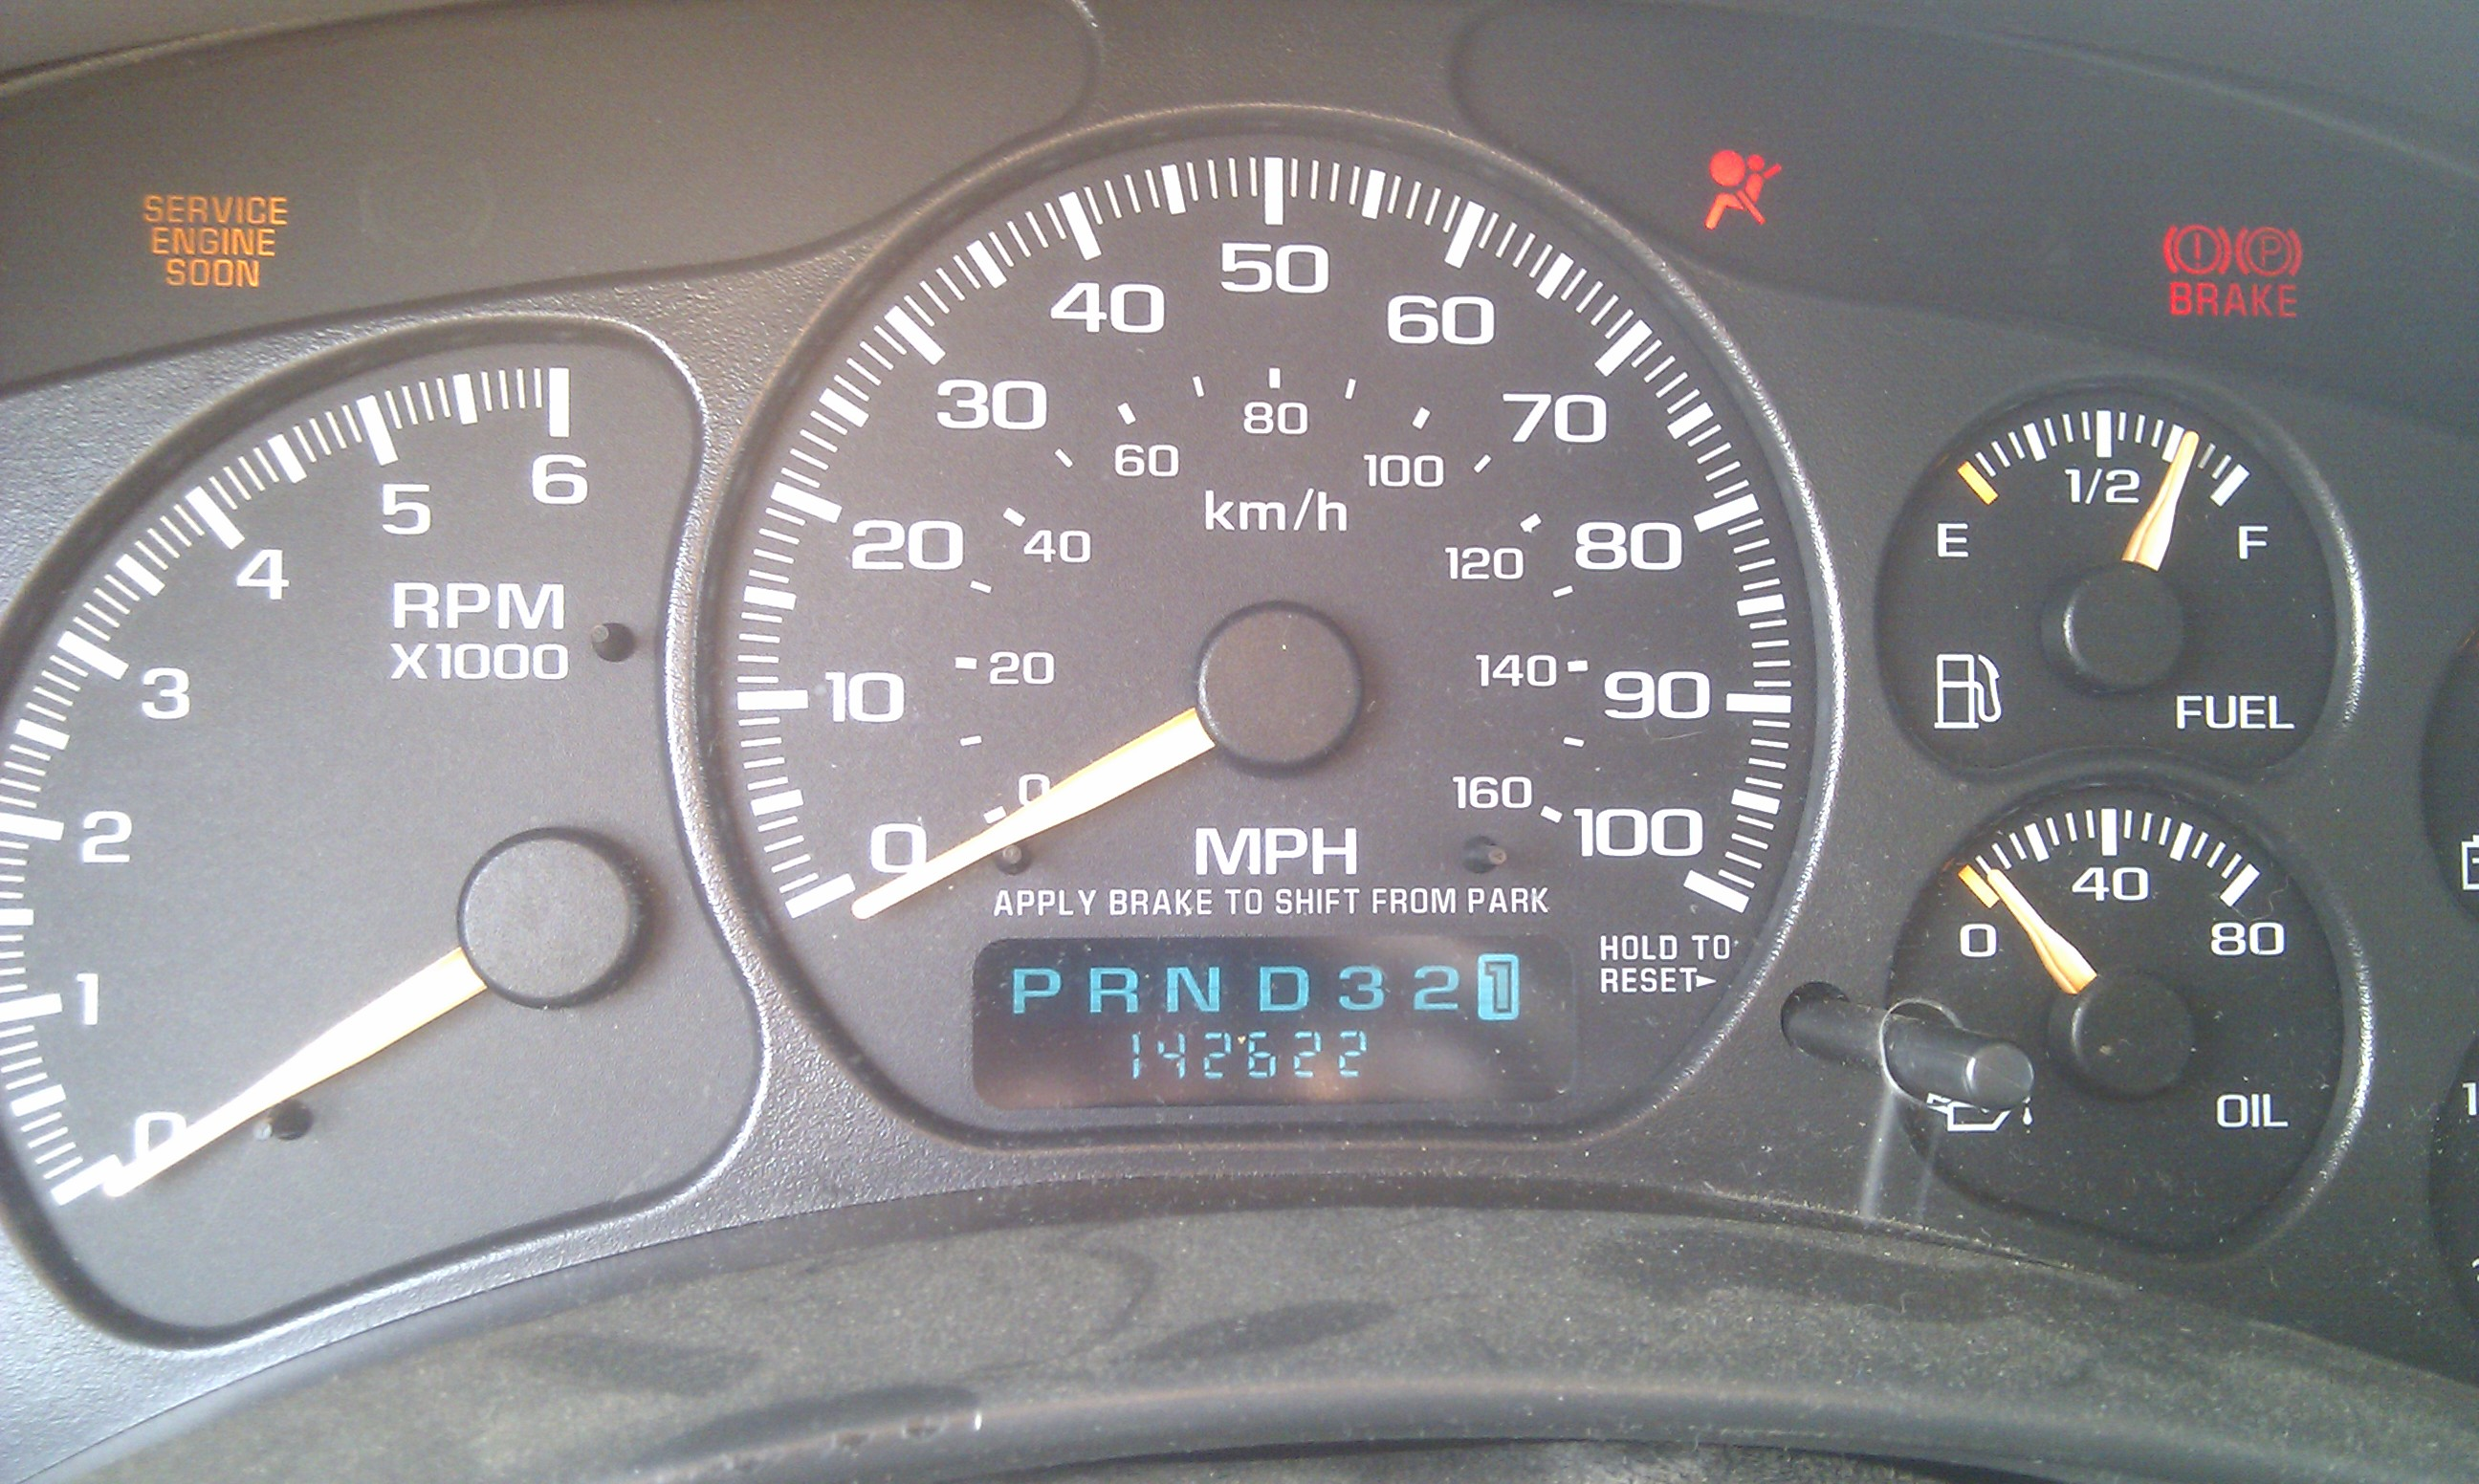 Picture of Repair the Odometer/PRND321 LCD Display on a '99-'06 GM/Chevy Truck